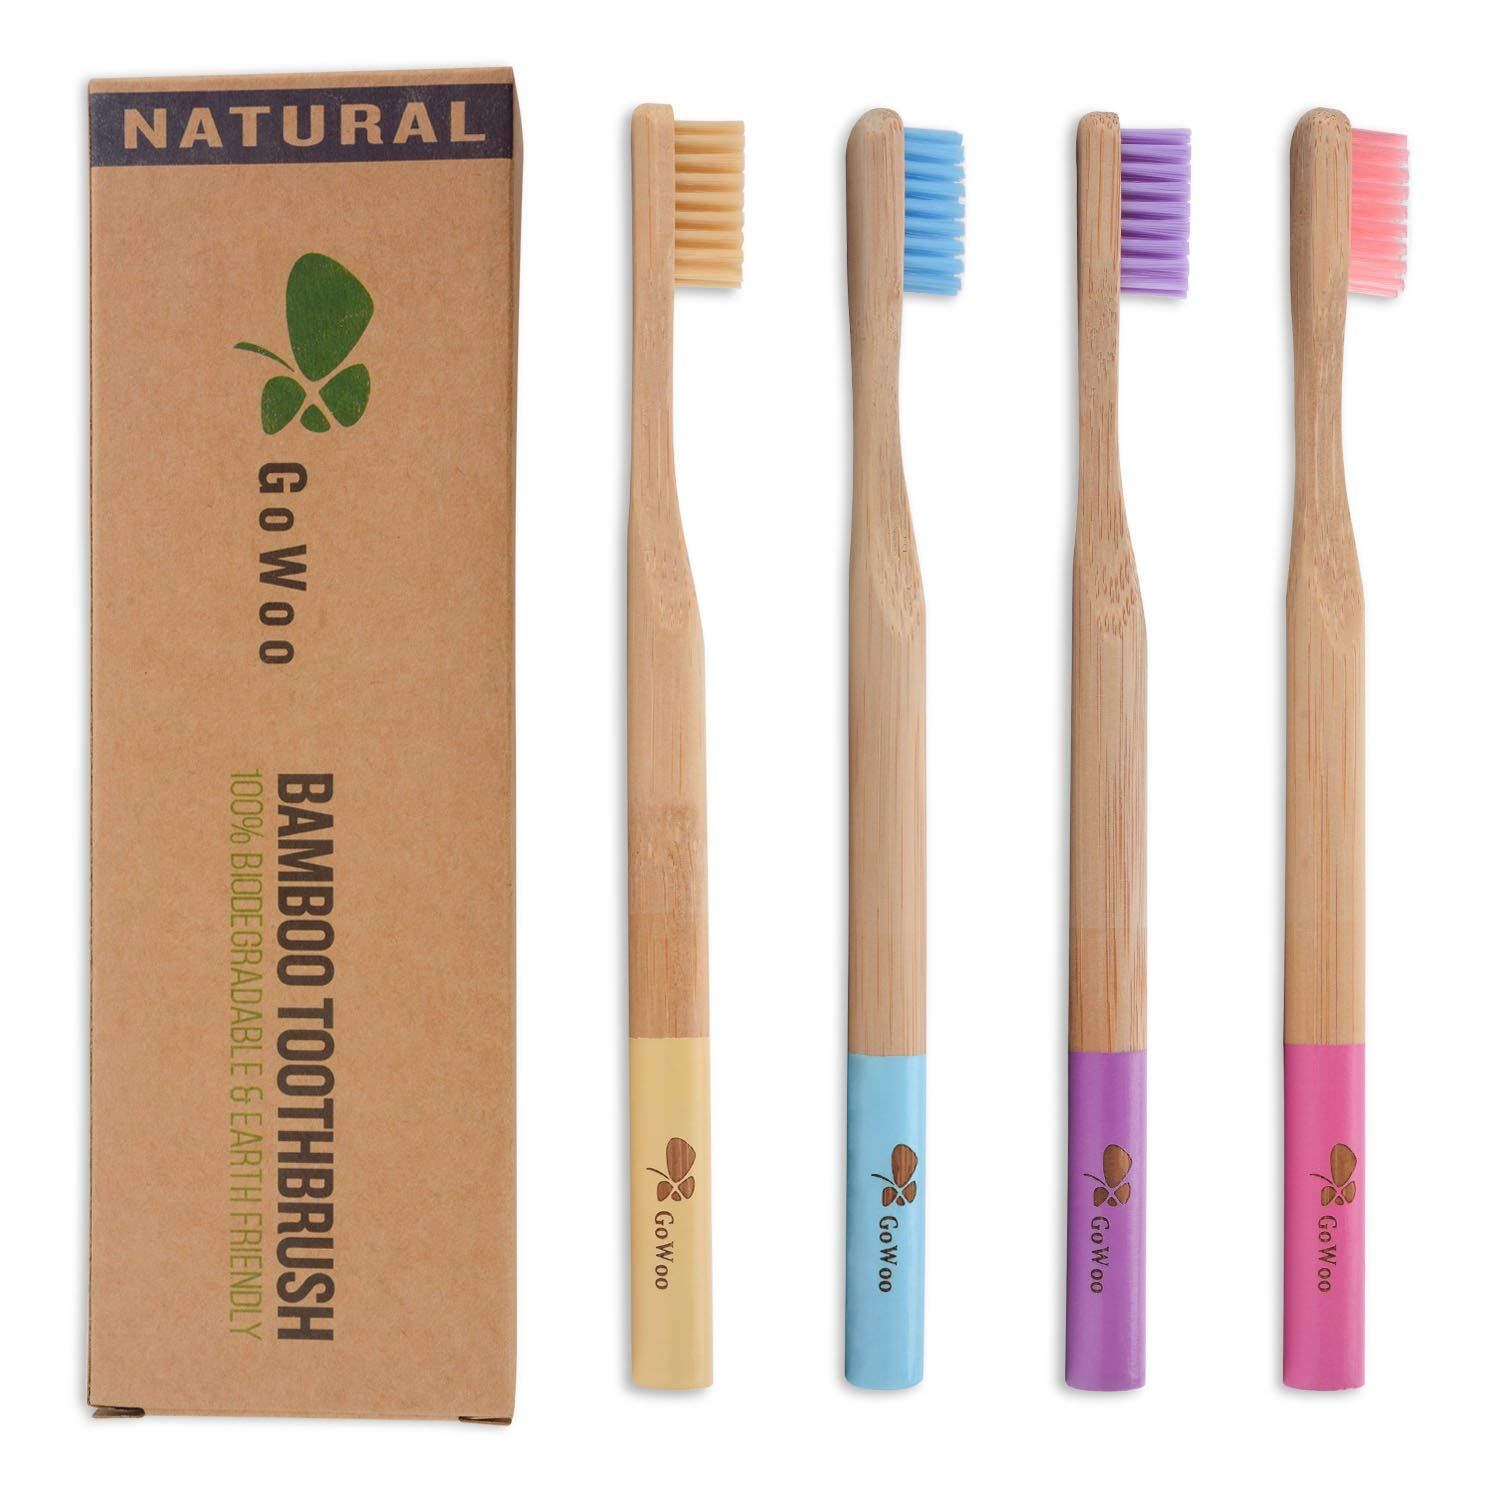 GoWoo bamboo toothbrush from Amazon